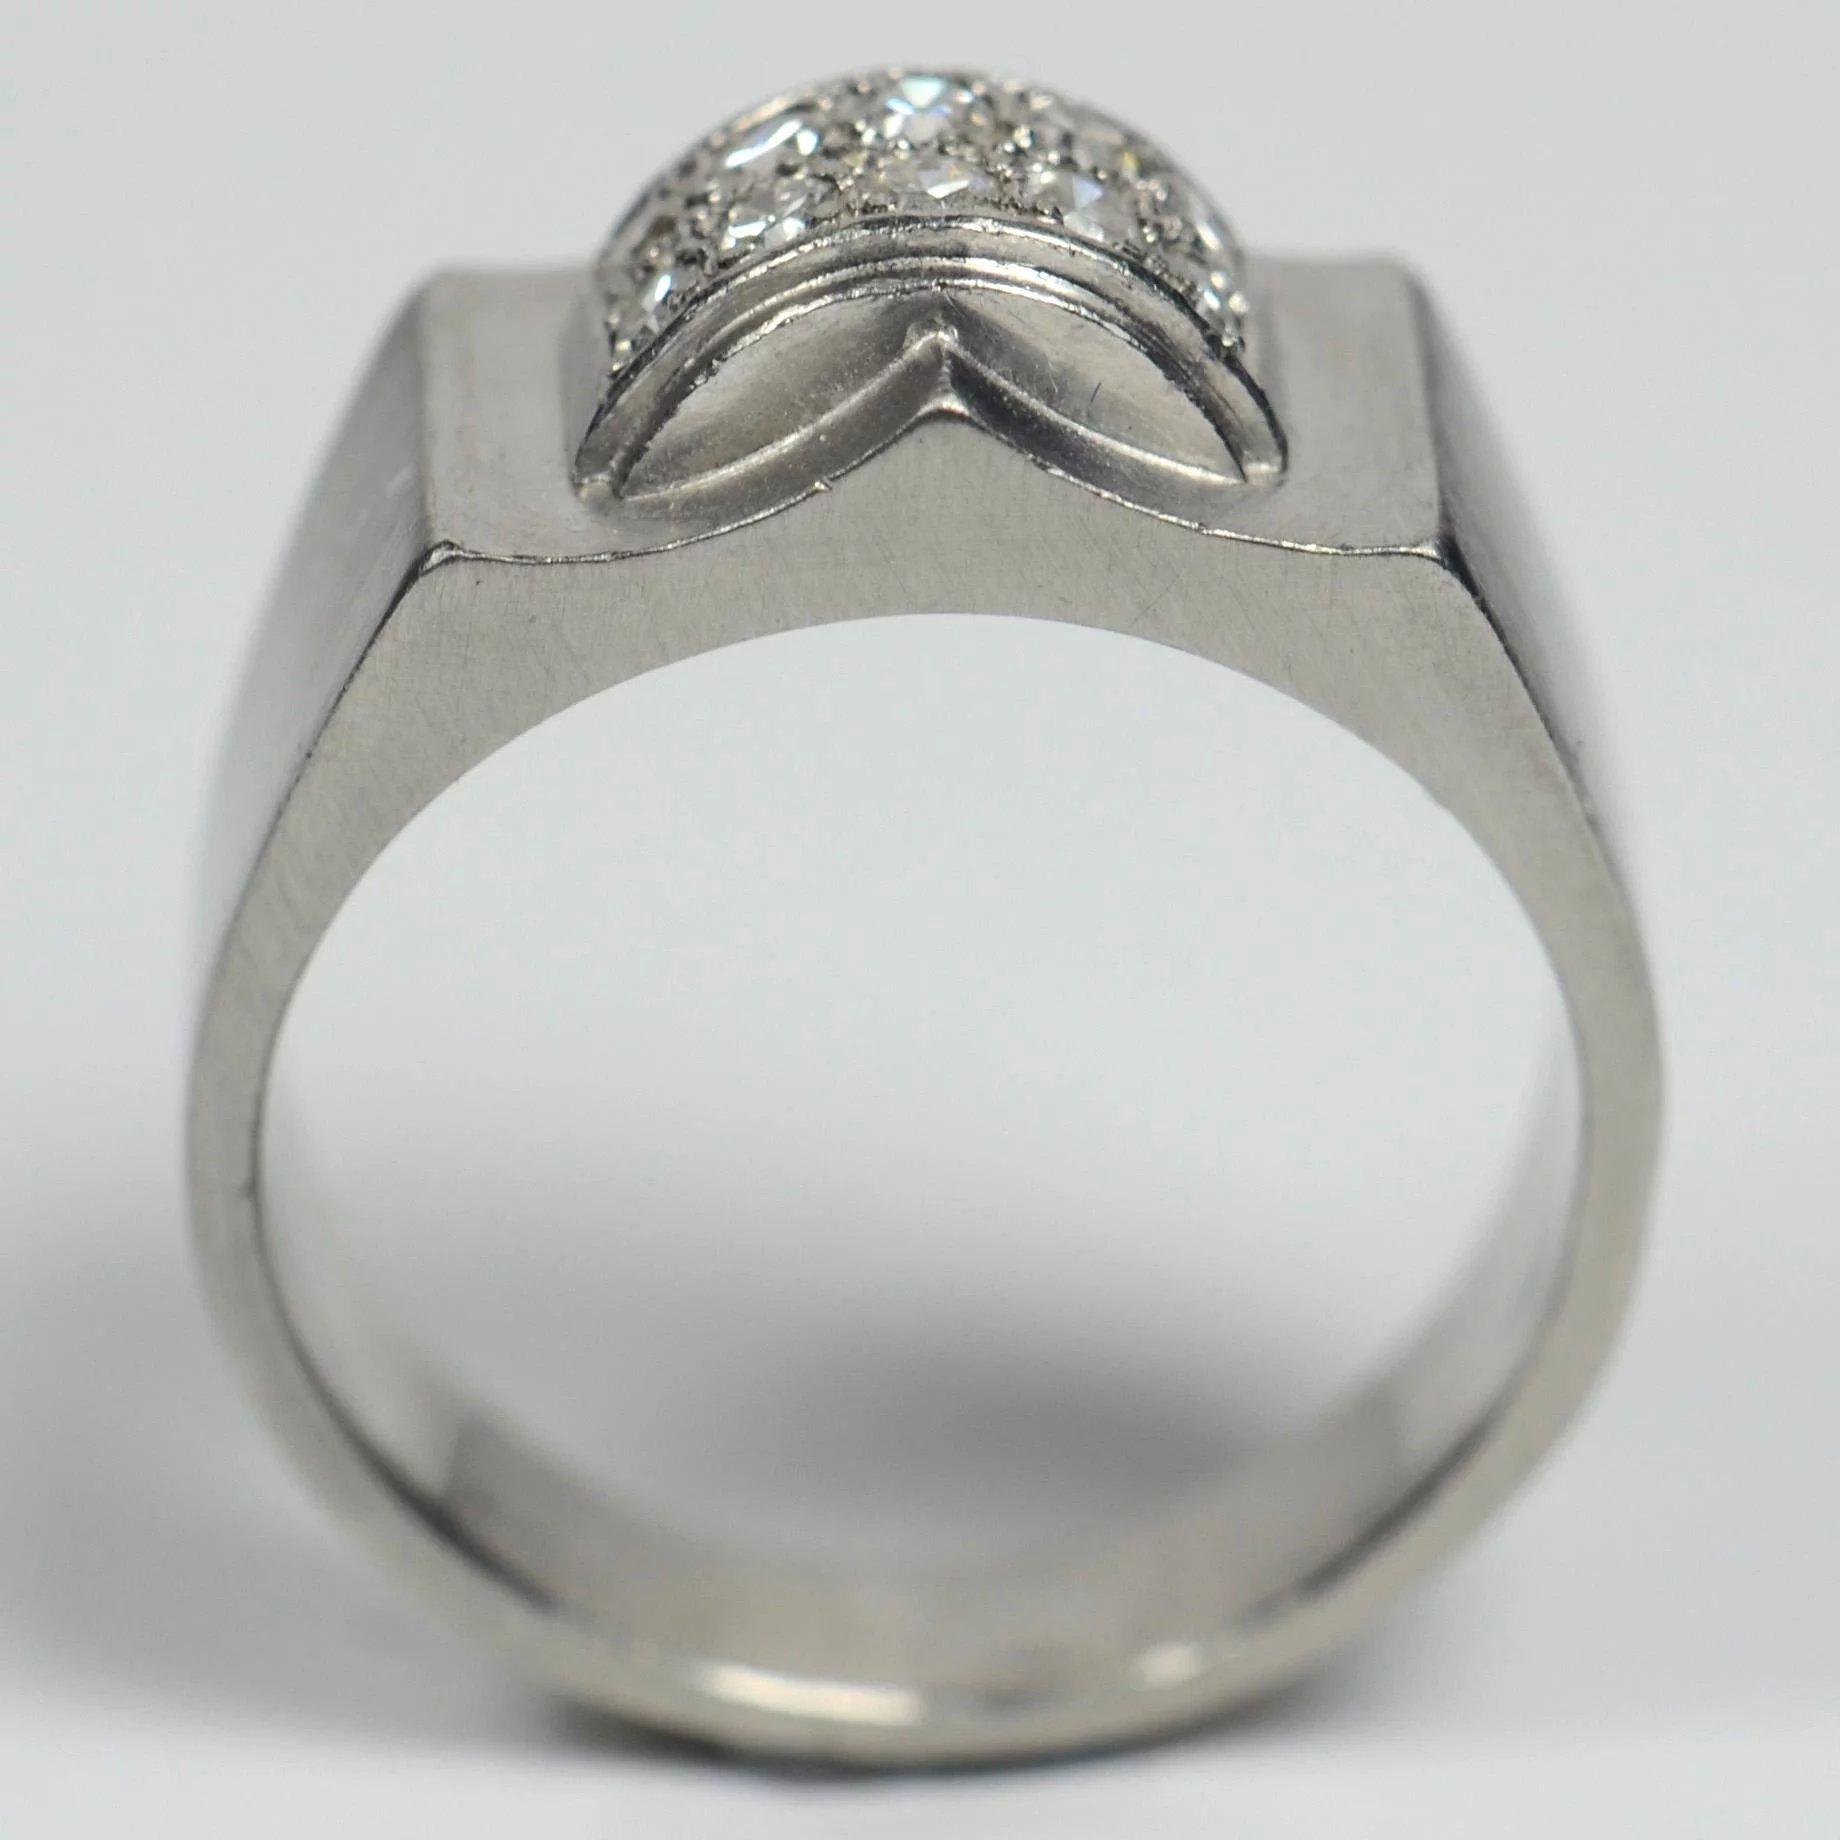 platinum modernist diamond mccaul white contemporary cut engagement and pear fine jewellery modern goldsmiths rings ring